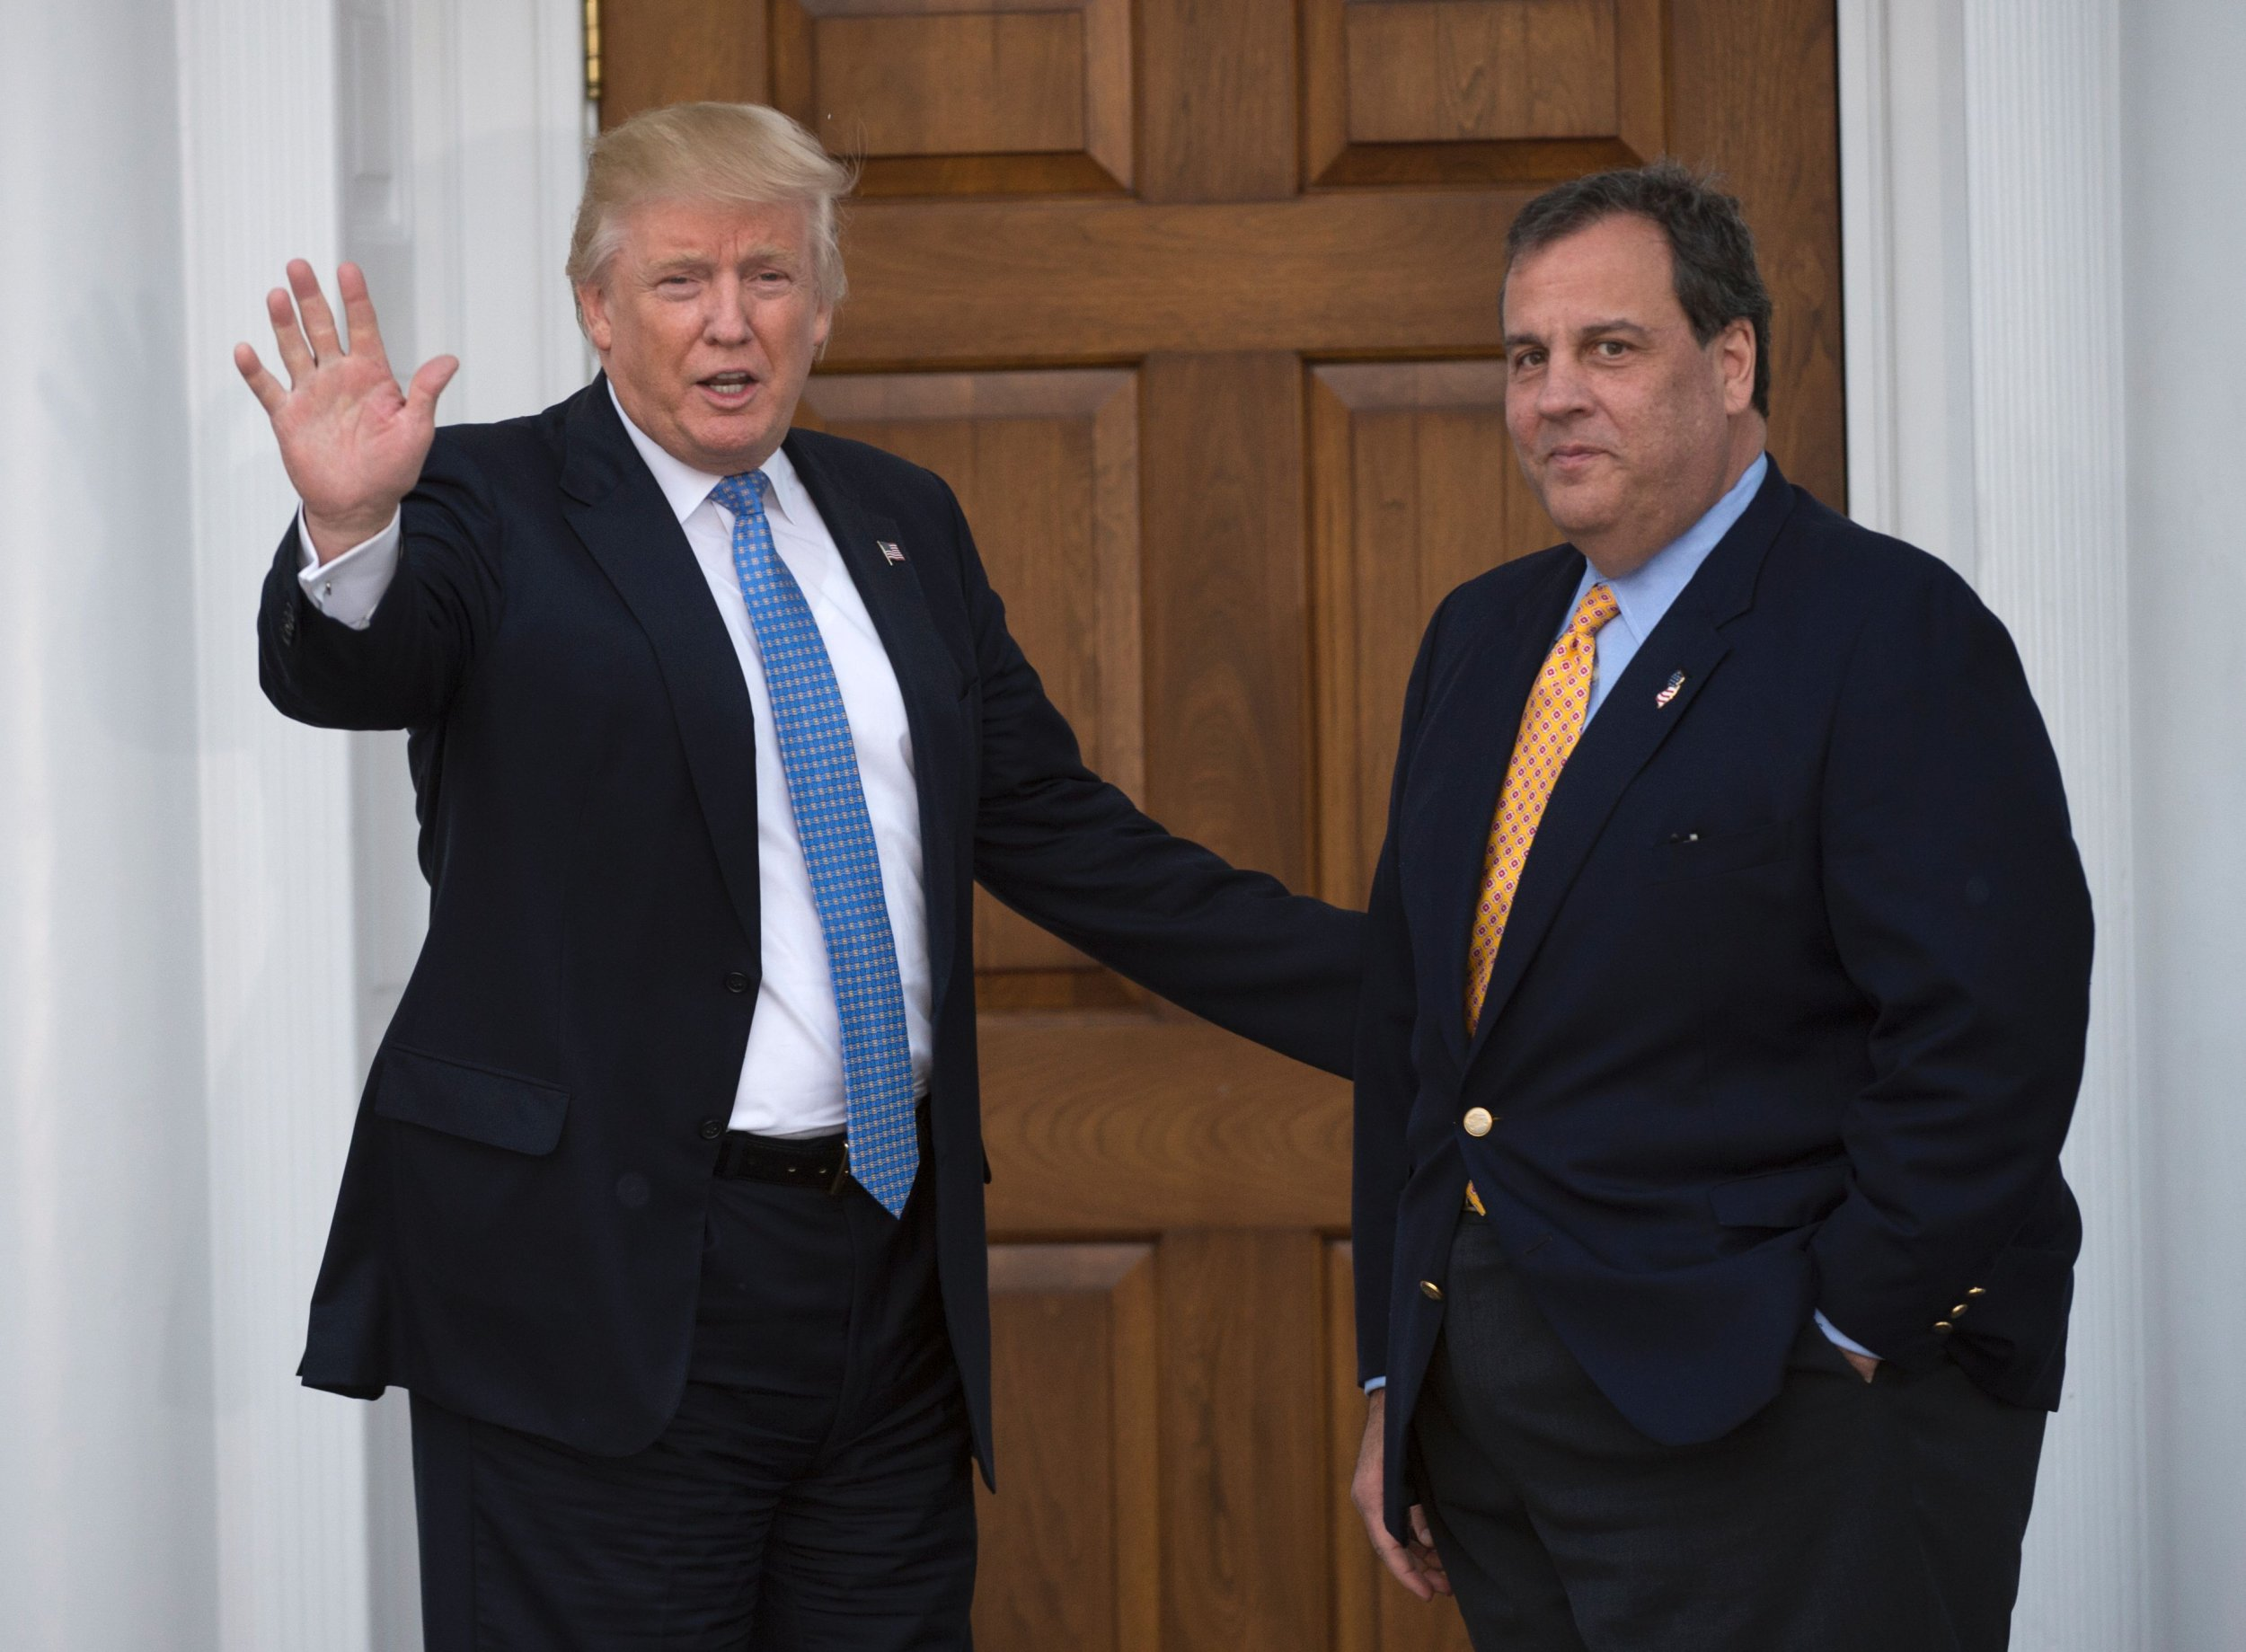 Fox News guest says he's advising Donald Trump on attorney general pick, adds Chris Christie would be perfect fit